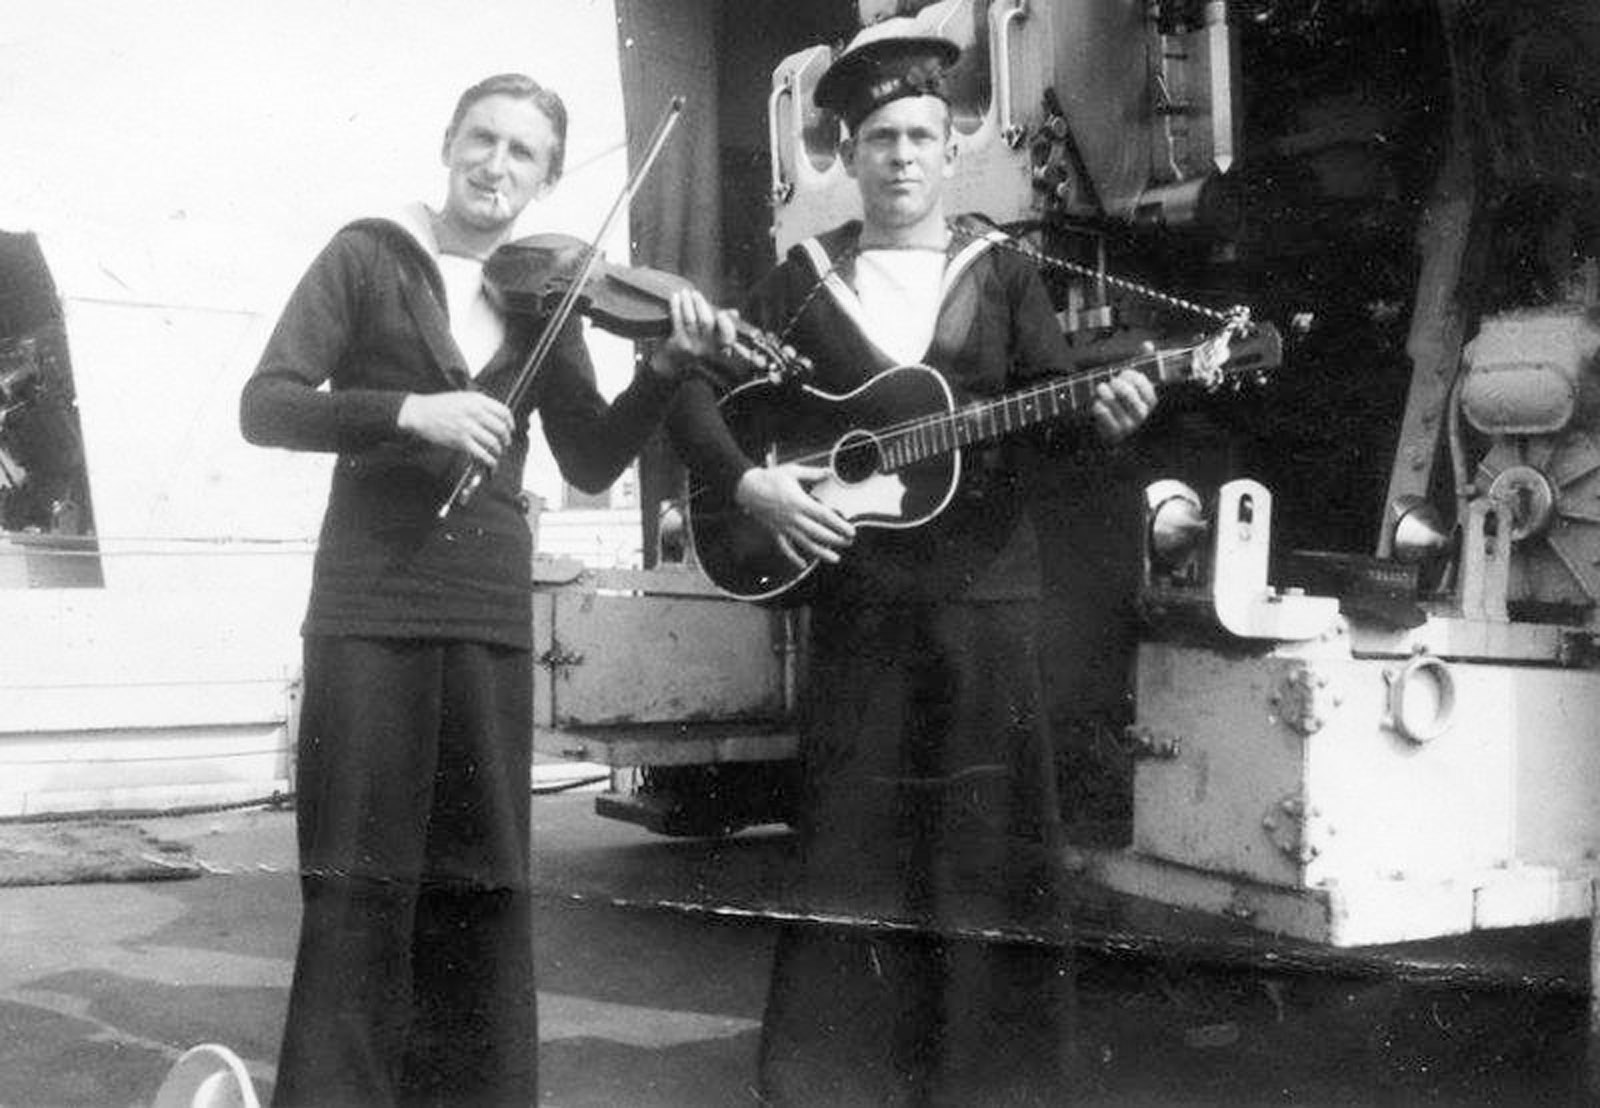 Lieutenant (Navy) Brendan Ryan's grandfather Harvey Mouland, right, plays his guitar while at sea aboard HMS Berkeley.